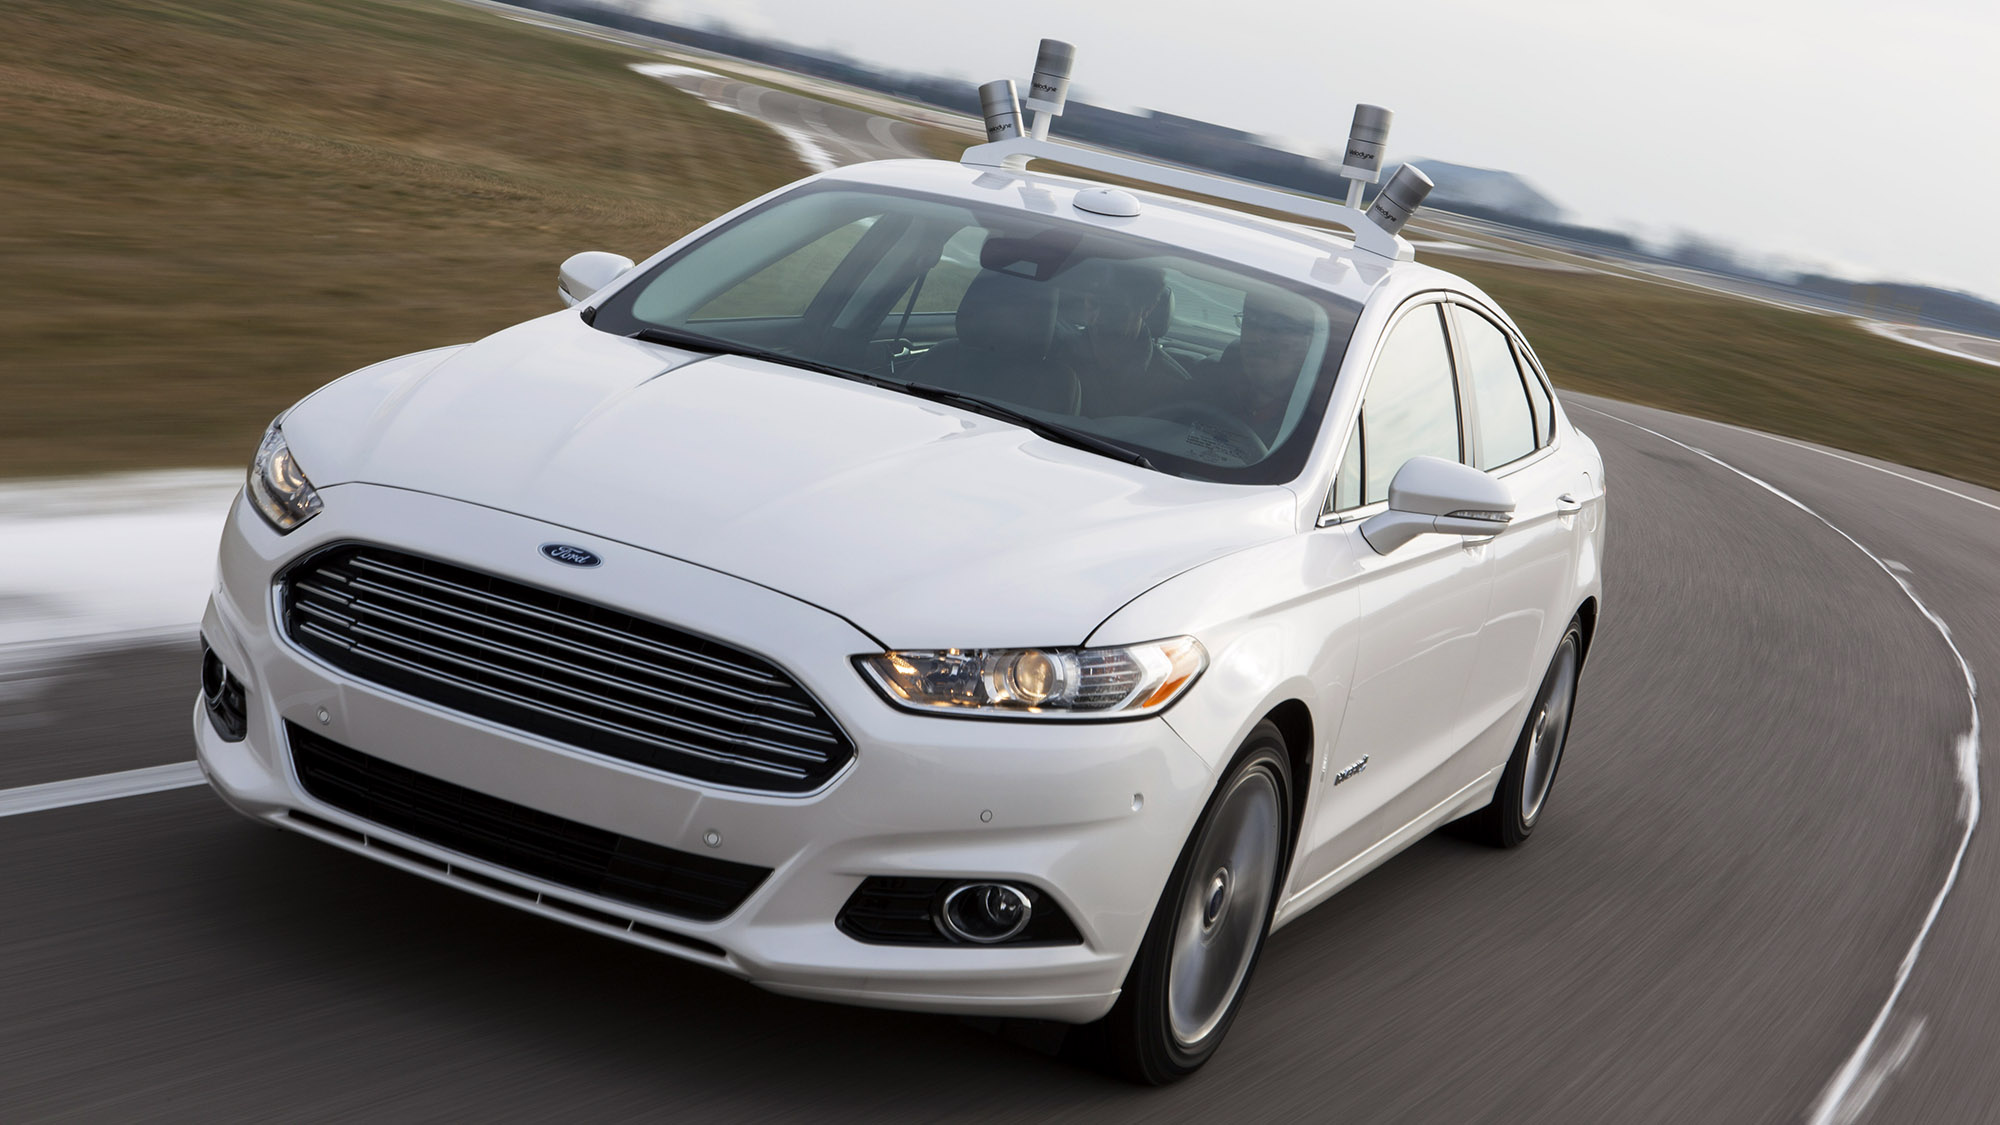 Ford Hints At Plans To Launch A Ride-sharing Program With Uber & Lyft